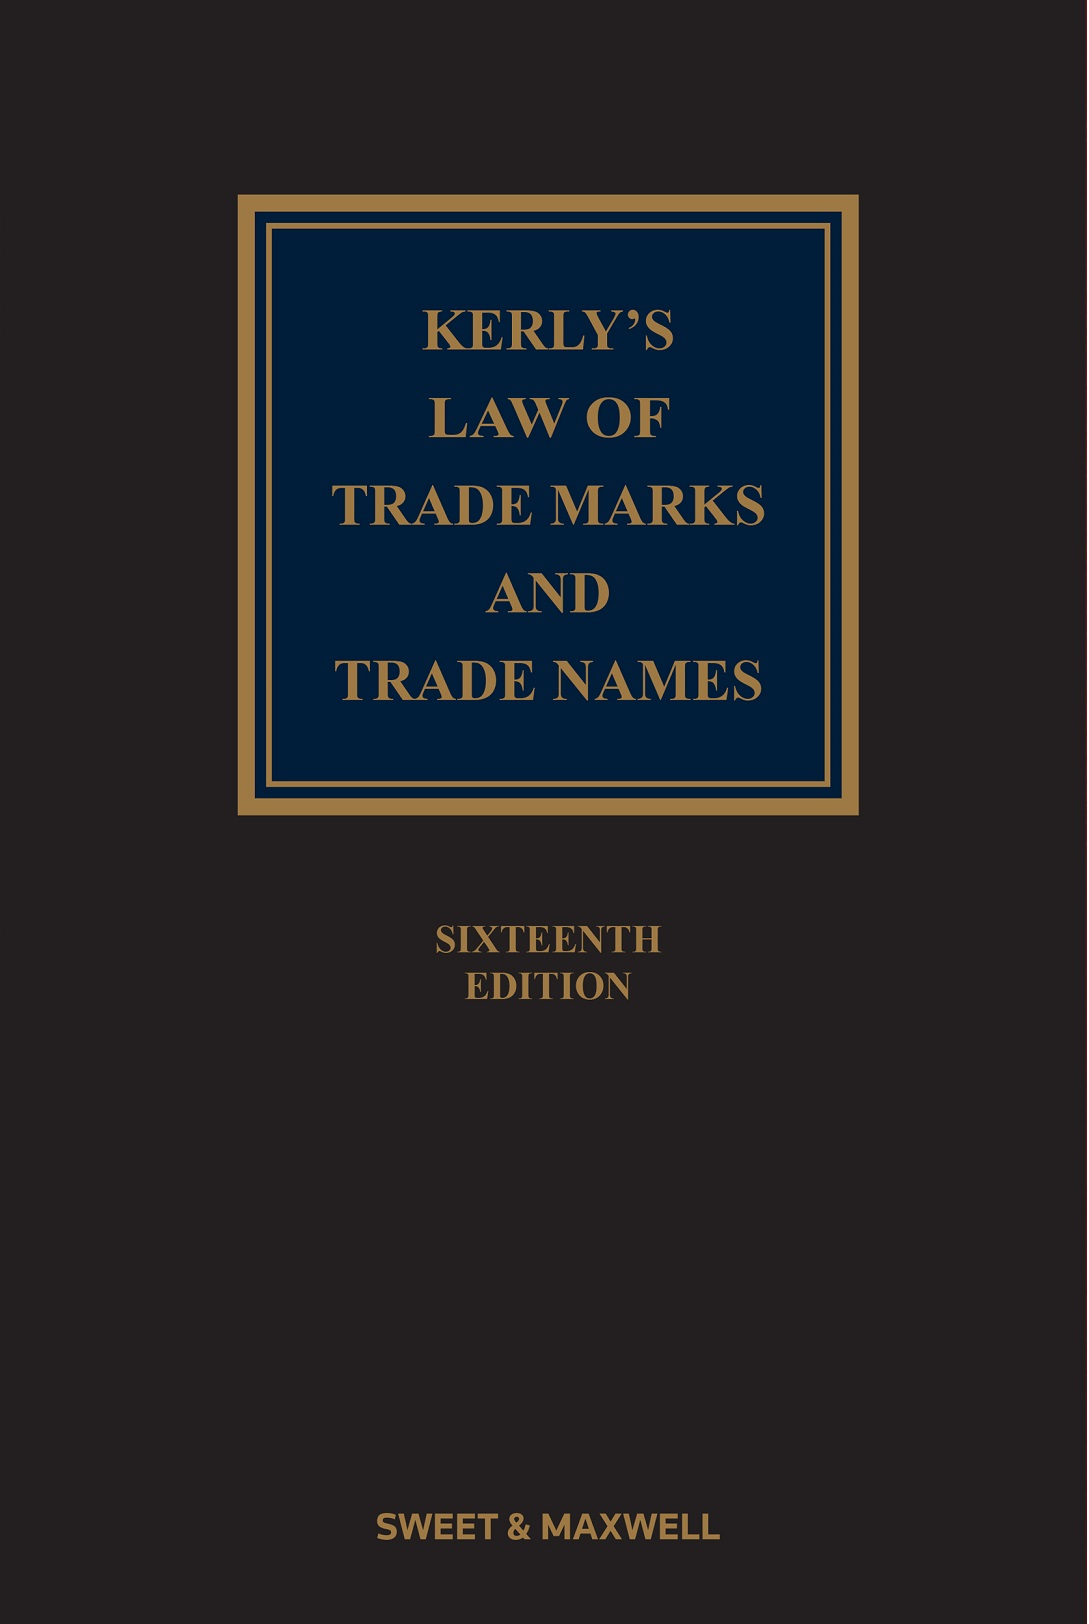 Kerly's Law of Trade Marks and Trade Names 16th Edition